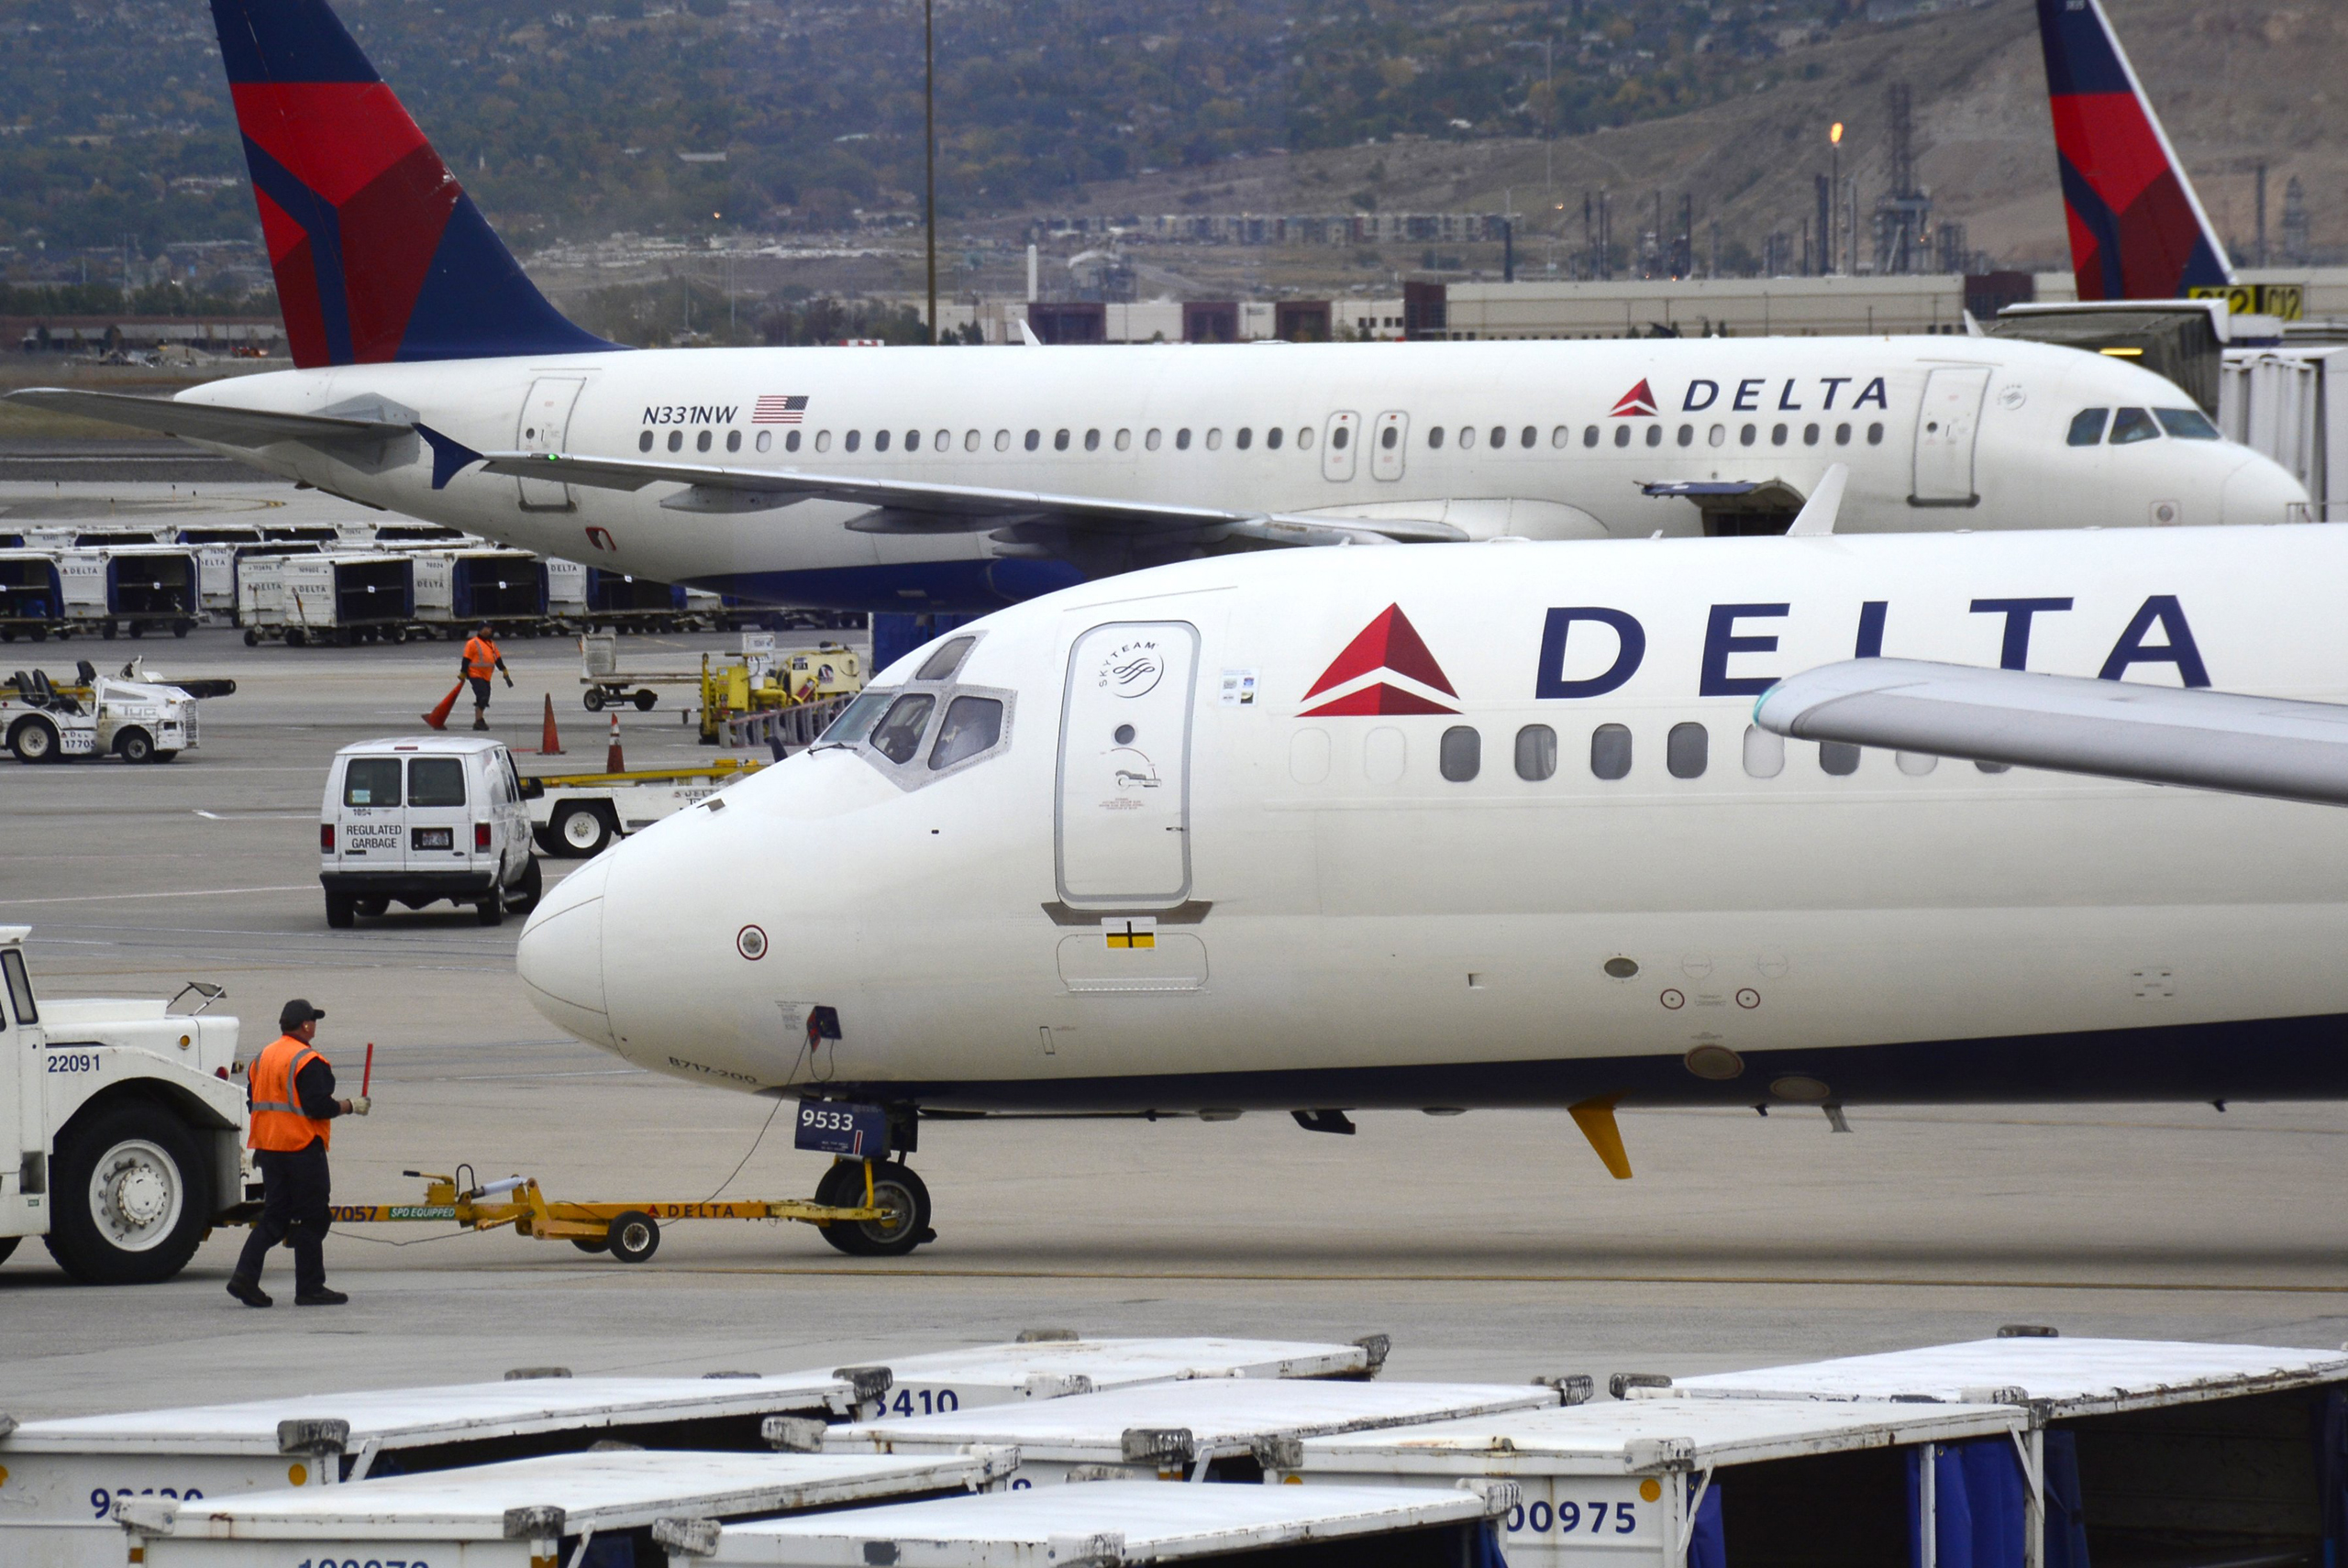 Delta Airlines passenger planes at Salt Lake City International Airport in Salt Lake City, Utah.